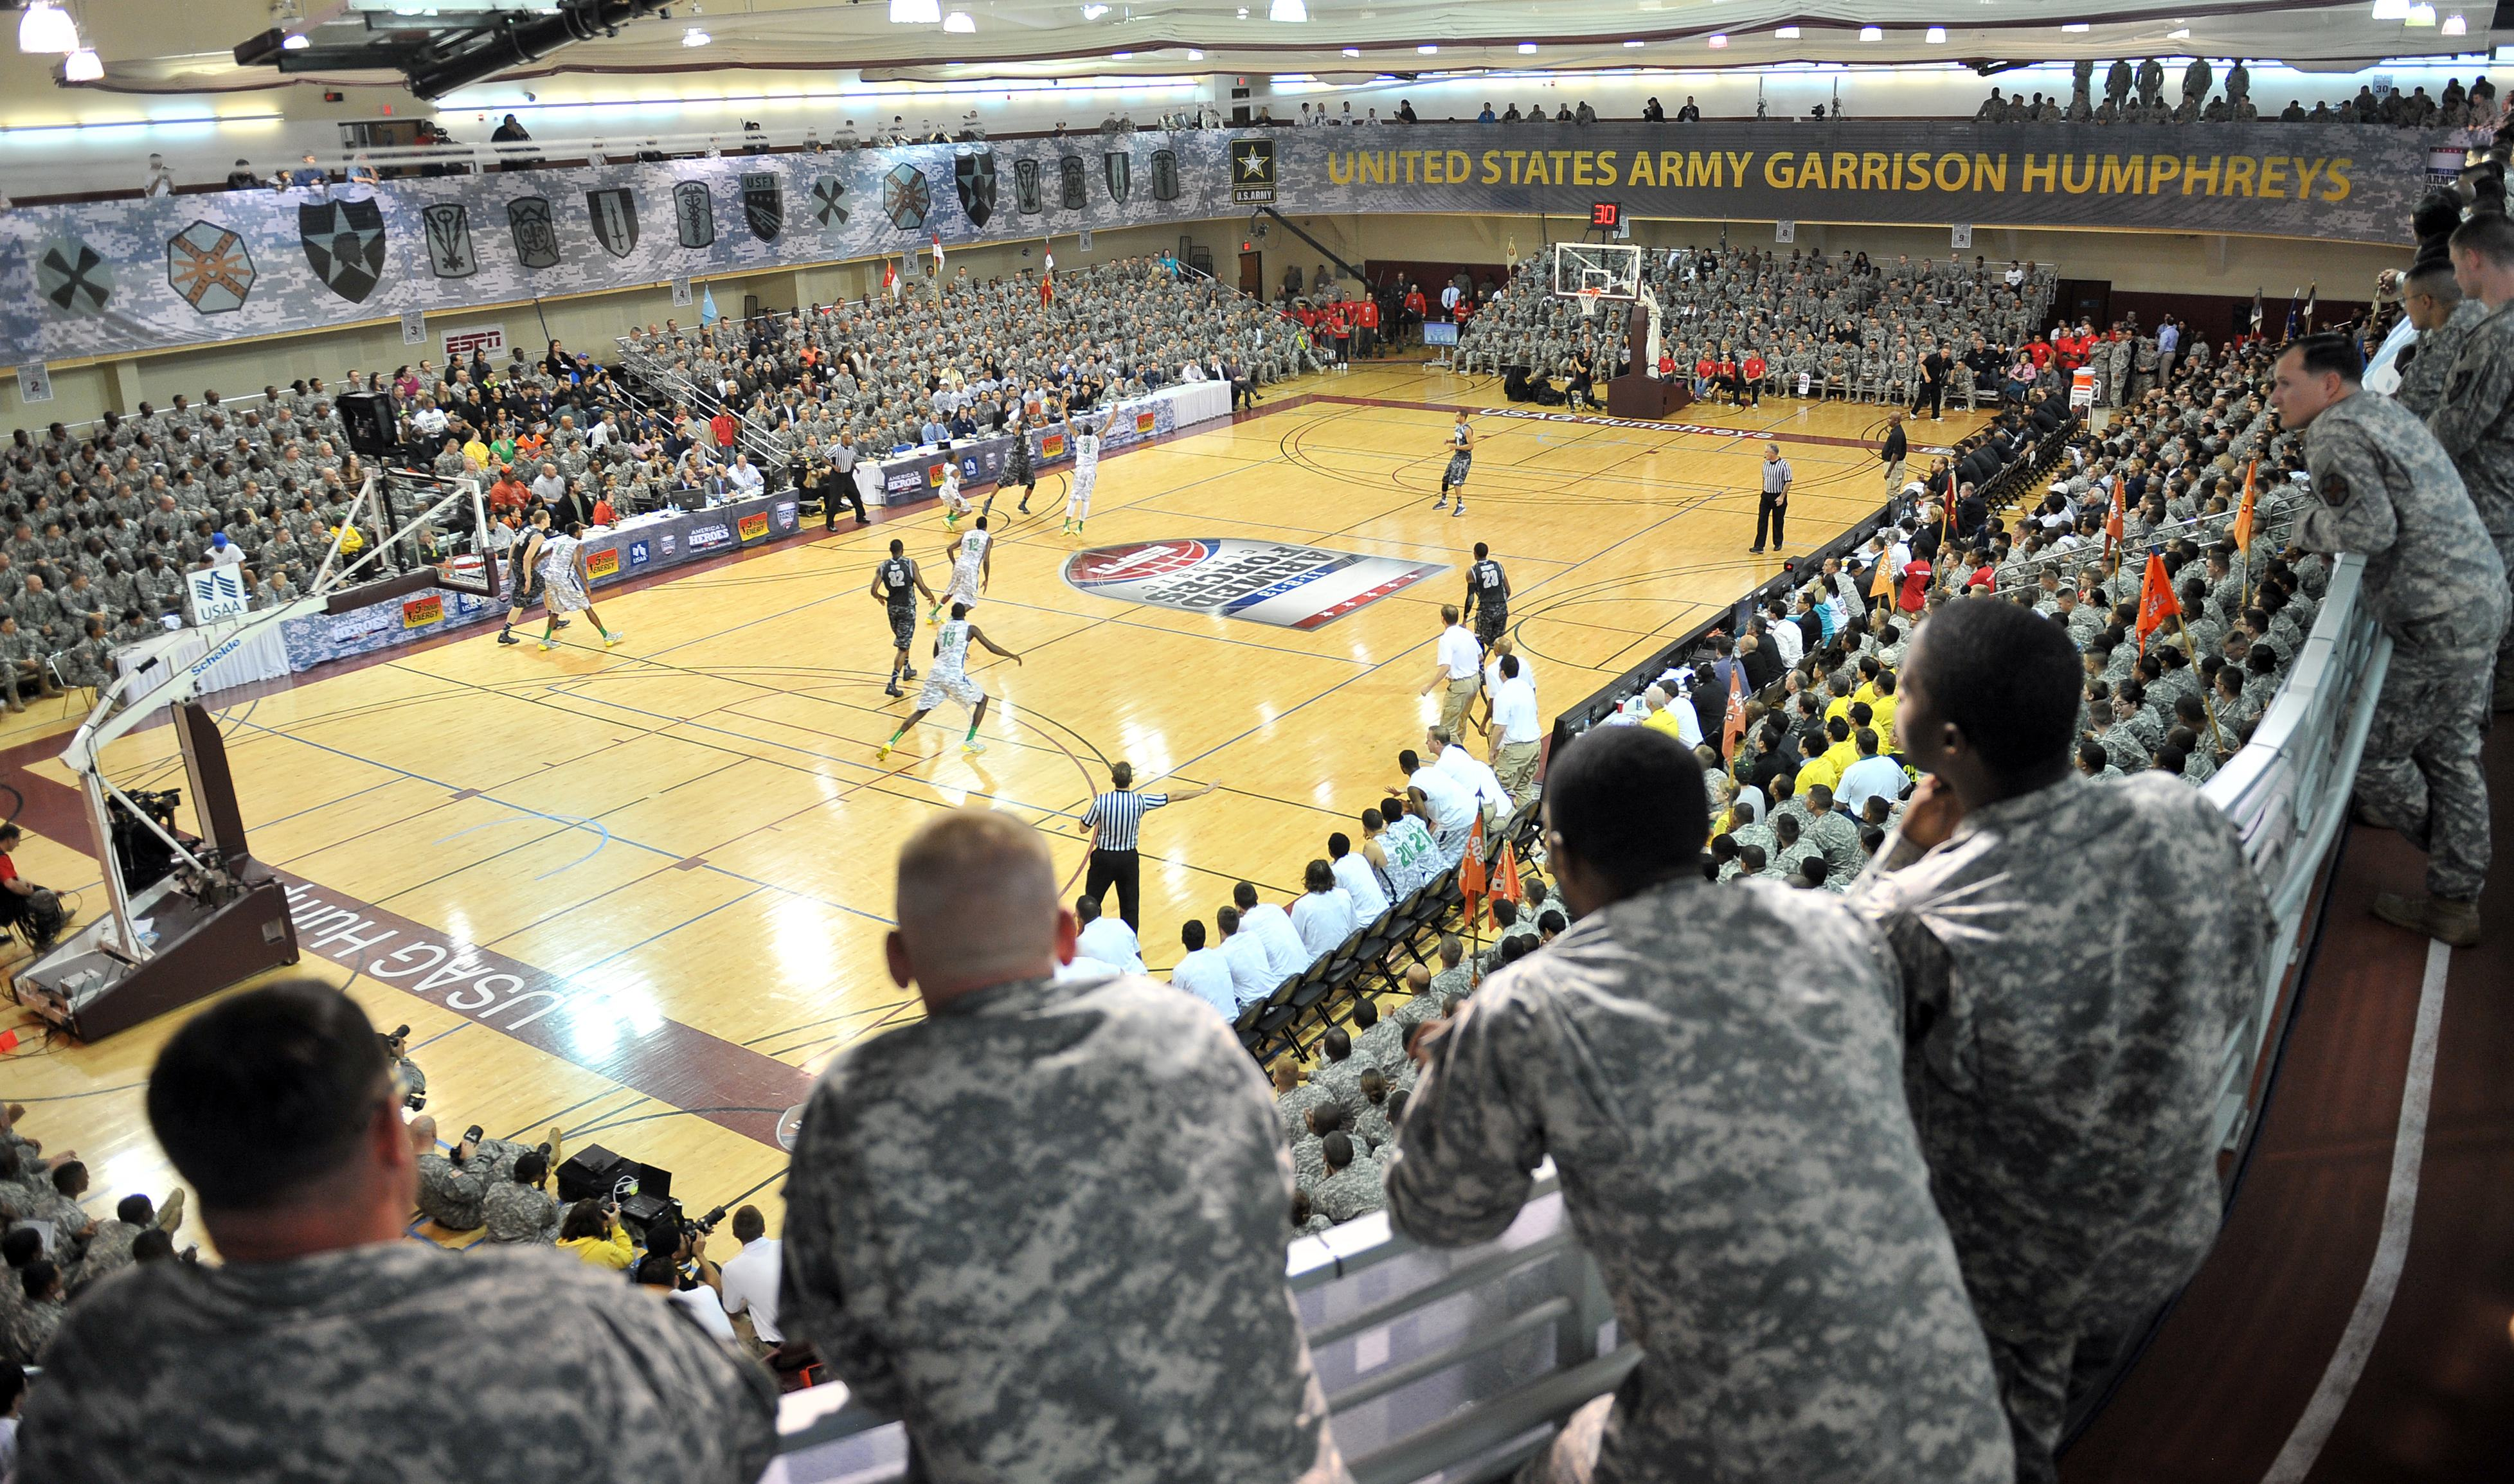 US soldiers watch a game during the Armed Forces Classic of the US college basketball at Camp Humphreys in Pyeongtaek, November 9, 2013.